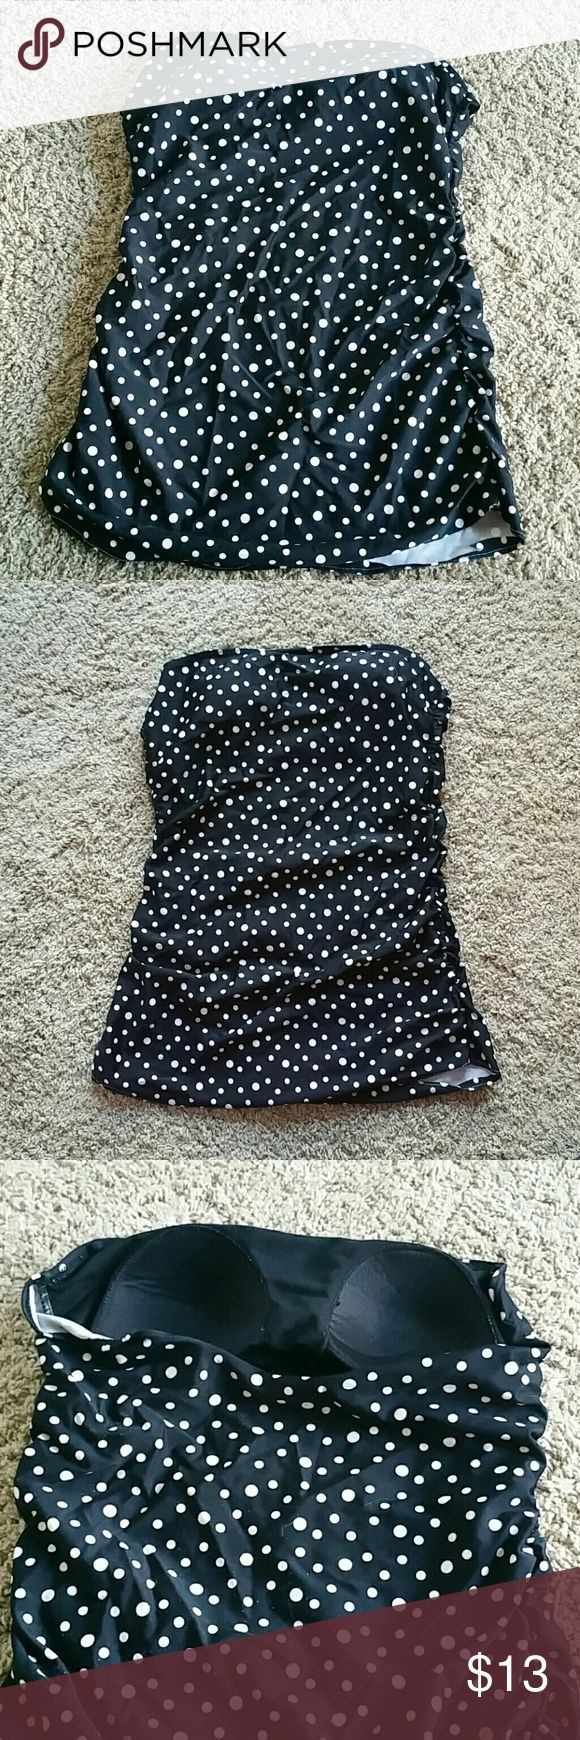 Slimming  tankini The shape and the ruffles of this tankini are extremely slimming. The dots are super cute and easy to match to swim bottoms!! There are tiny little snags on it and it seems noticeable in the light i took the pictures in, but they are very subtle. Swim One Pieces